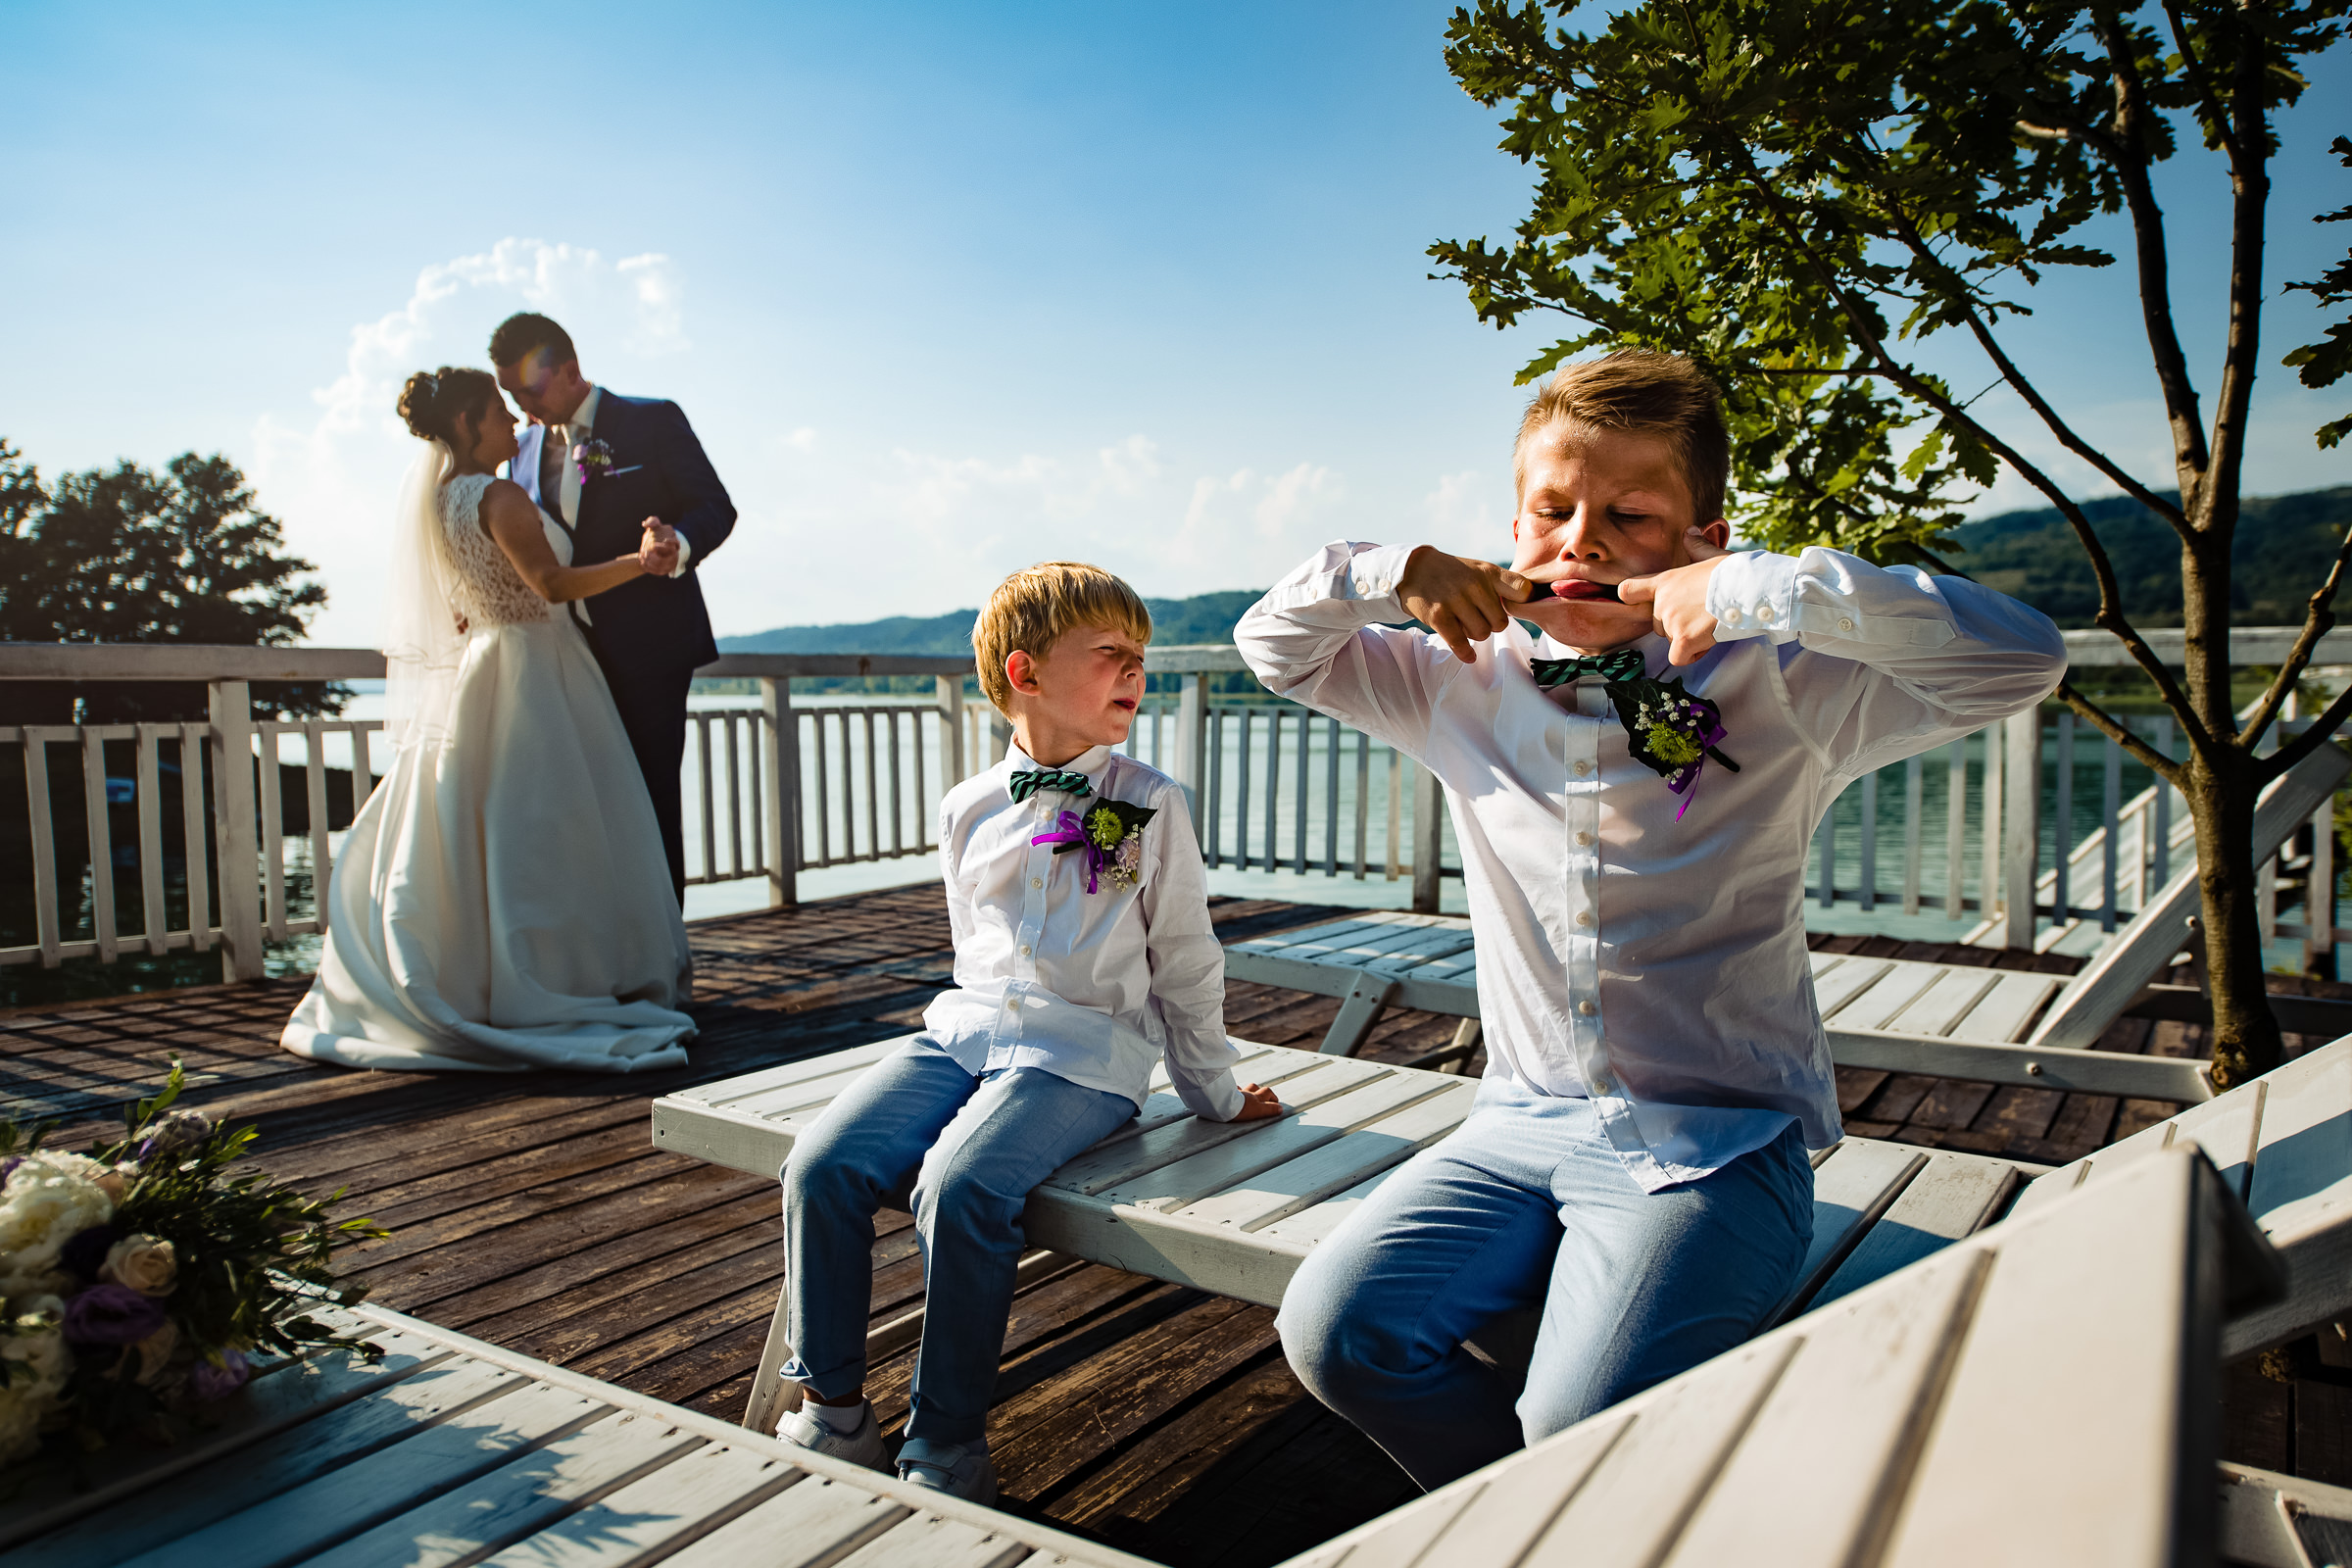 Boy makes funny face while couple embraces on waterfront dock - photo by Deliysky Studio